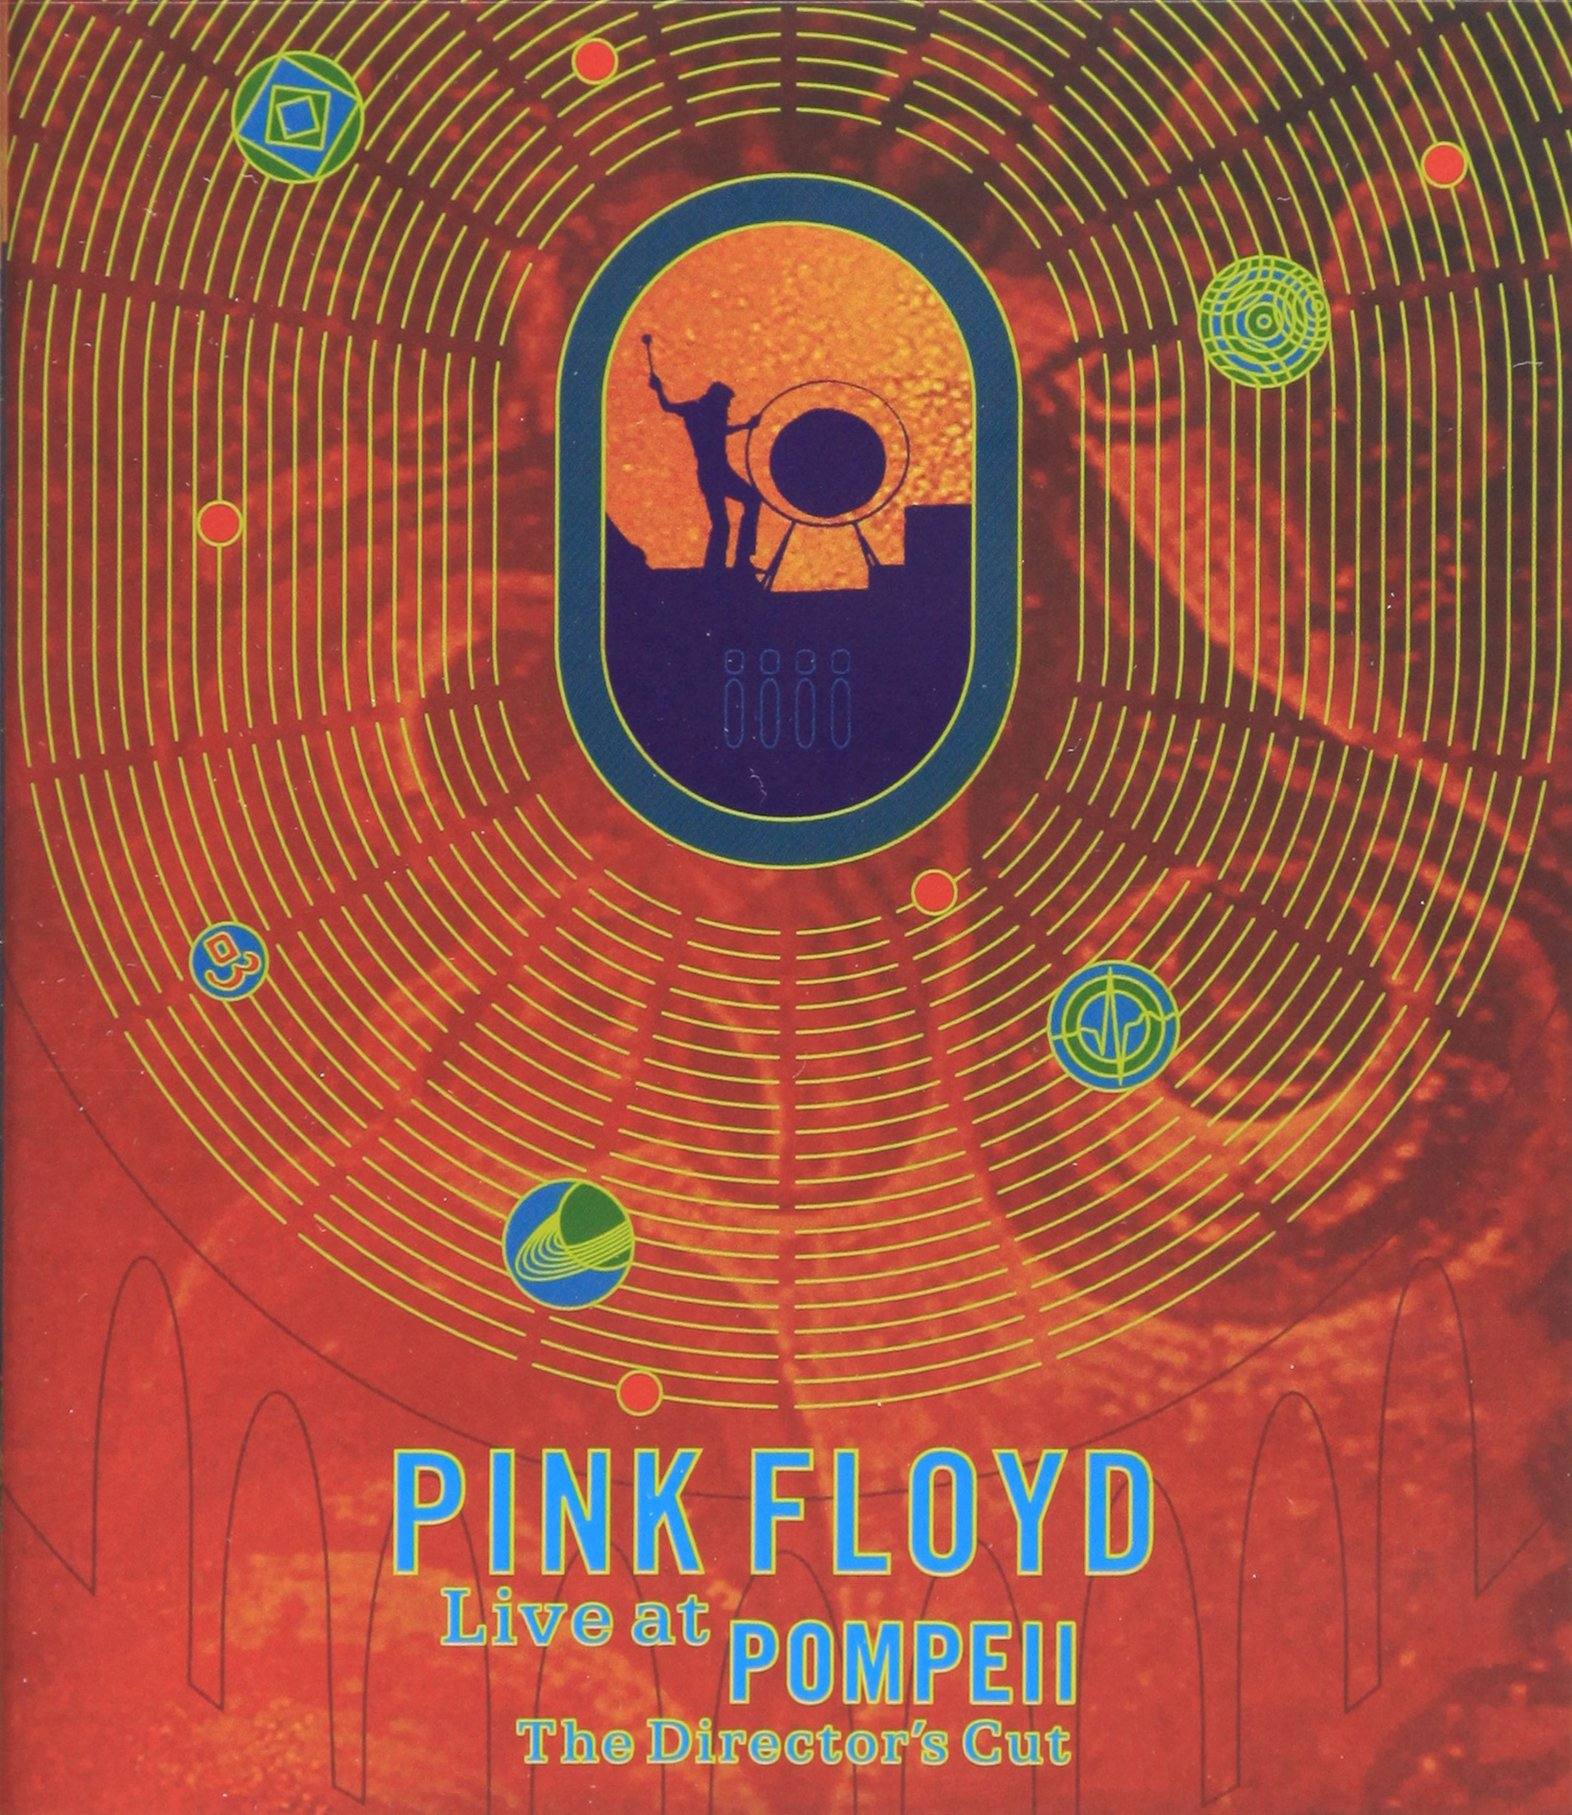 Pink Floyd - Live at Pompeii (Director's Cut) by Hip-O